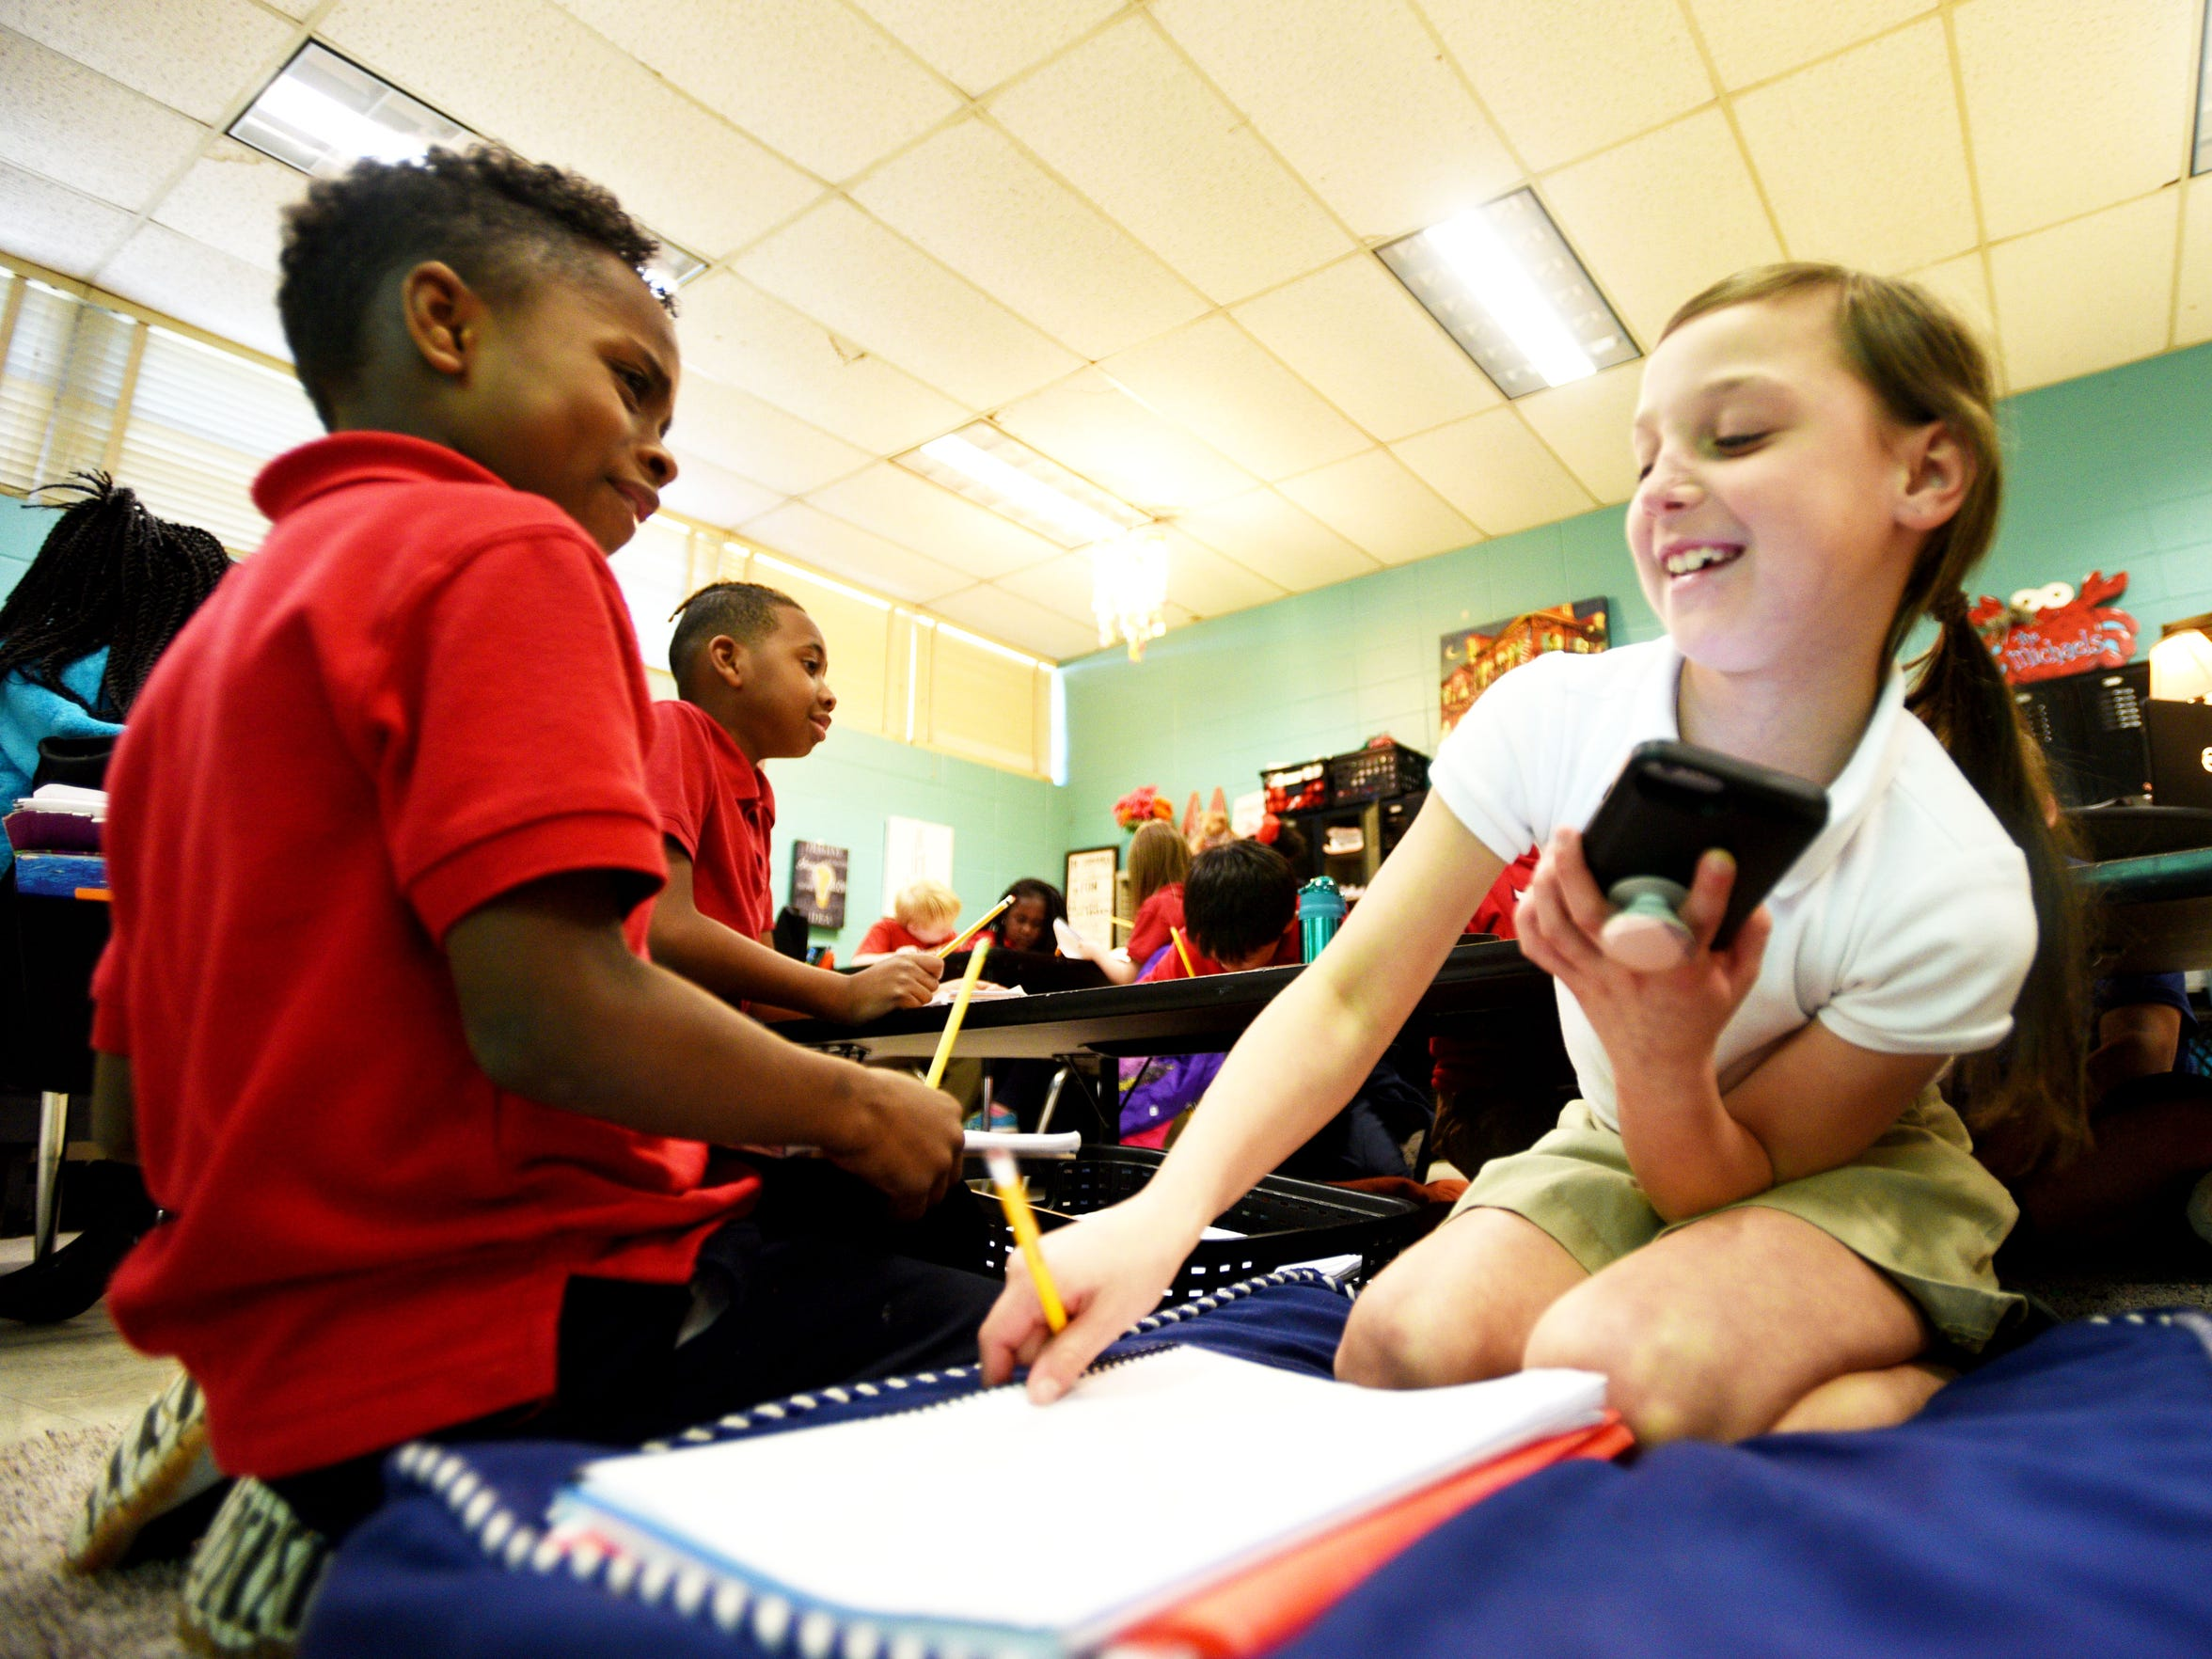 University Elementary students Sir Kamryn Stevens and Amberley Kennedy work together in class Tuesday, December 4, 2018.